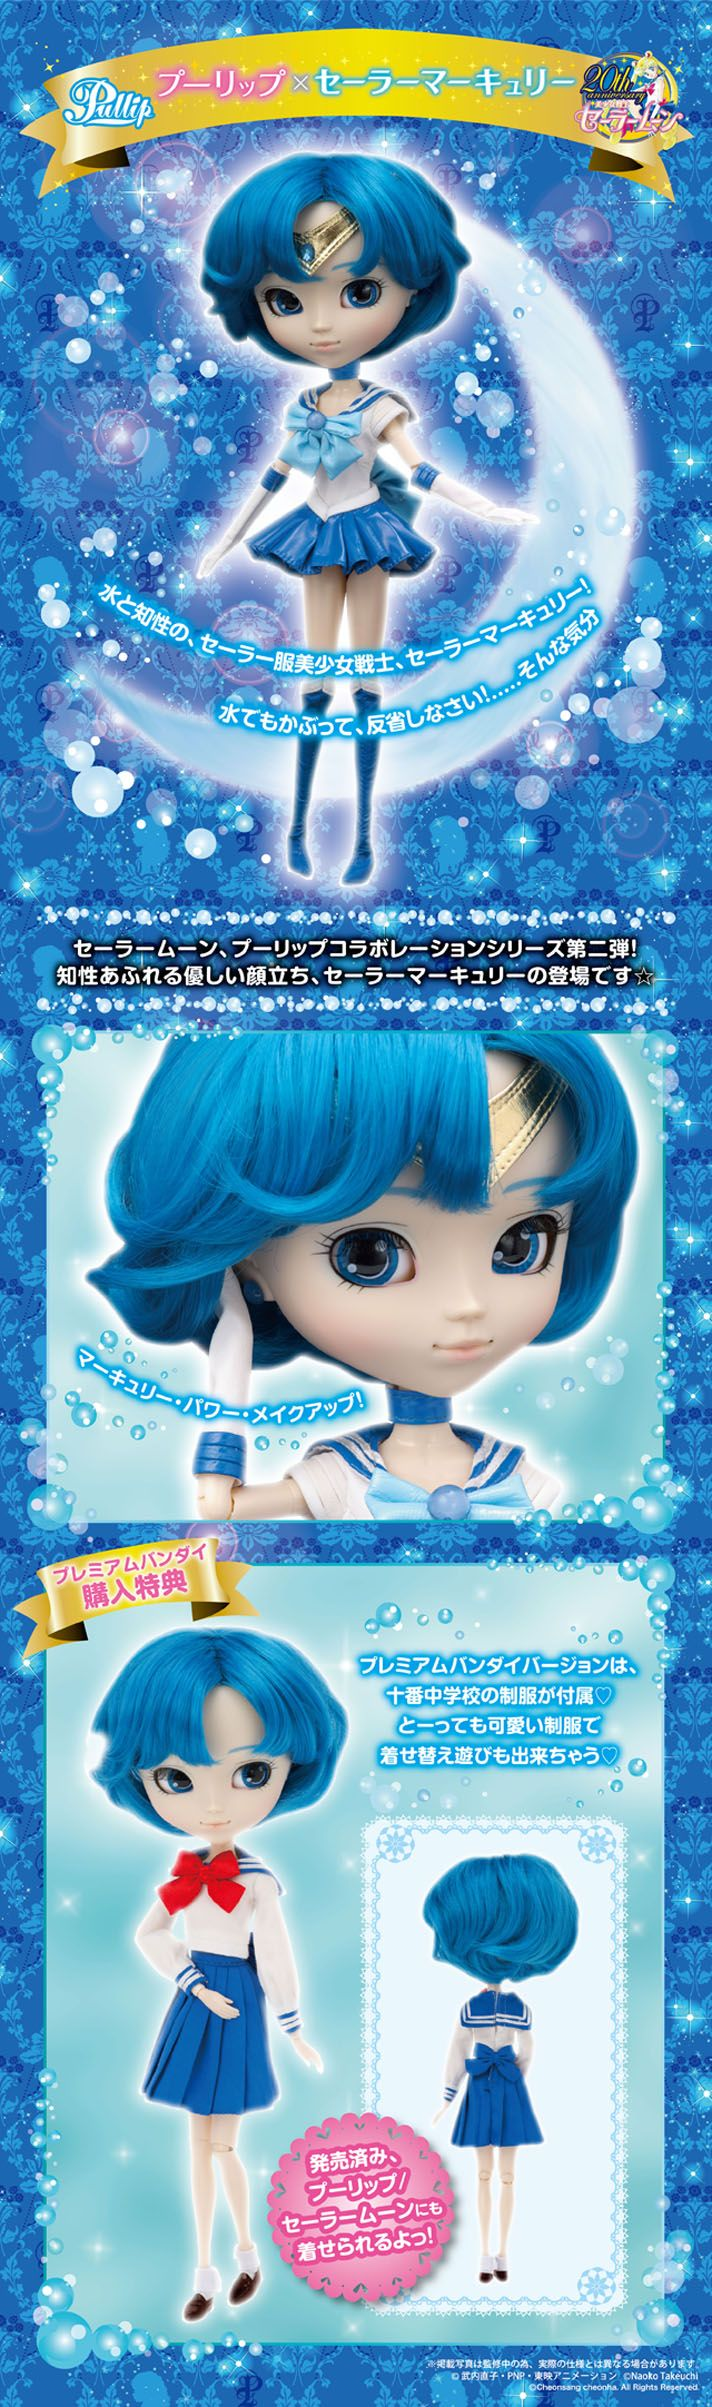 Sailor Moon Pullip doll, Sailor Mercury (Premium Bandai Limited Edition)